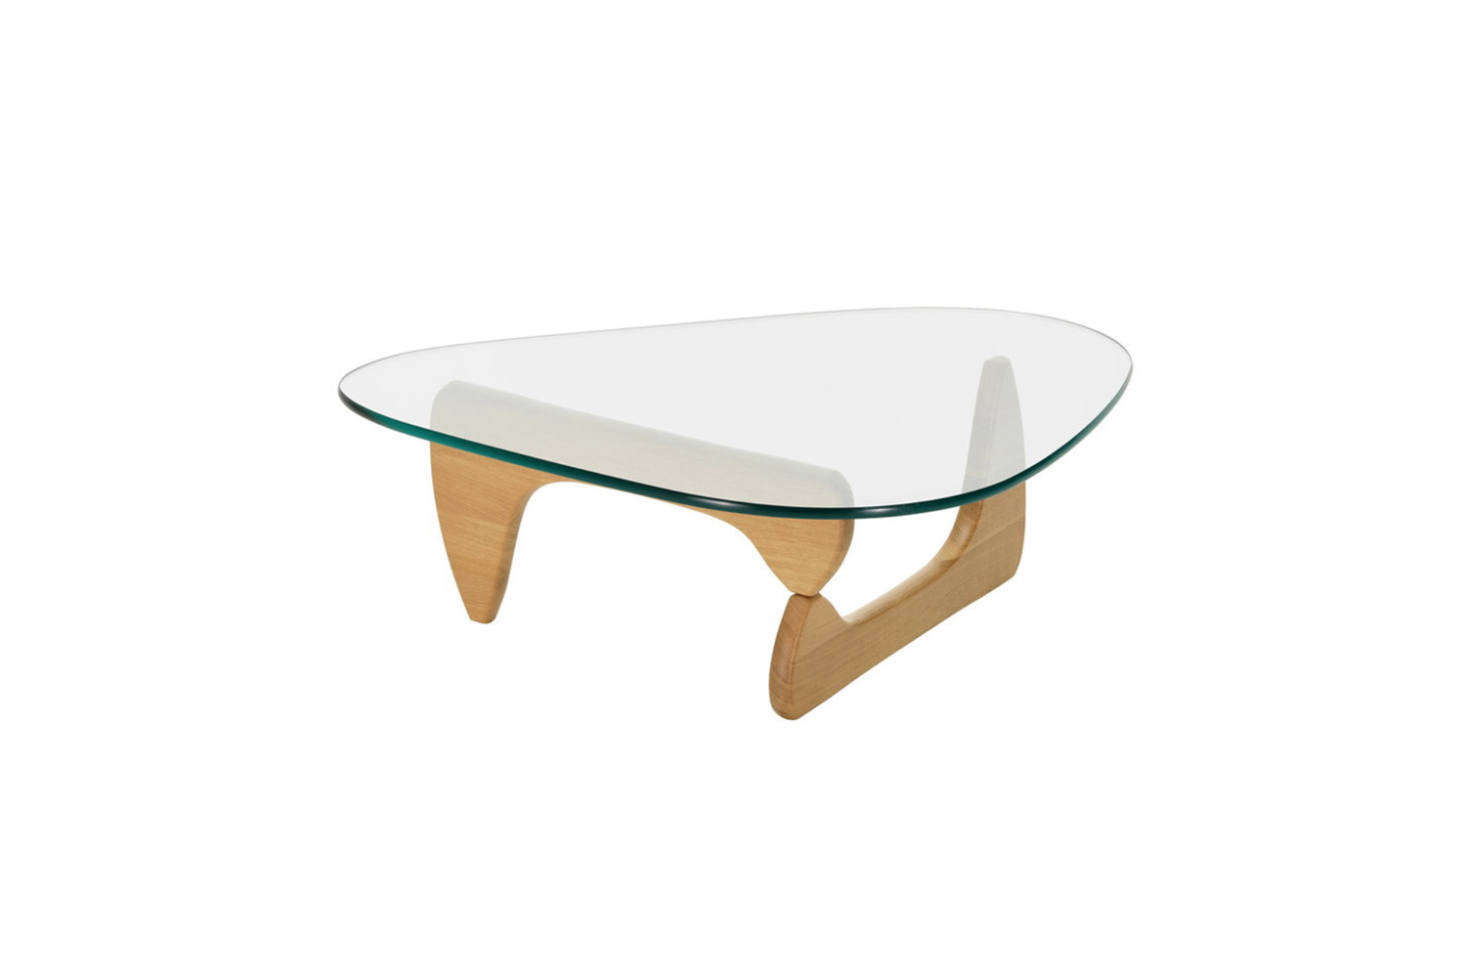 The classic Noguchi Table designed by Isamu Noguchi for Herman Miller comes in White Oak (shown), White Ash, Walnut, and Black; $src=